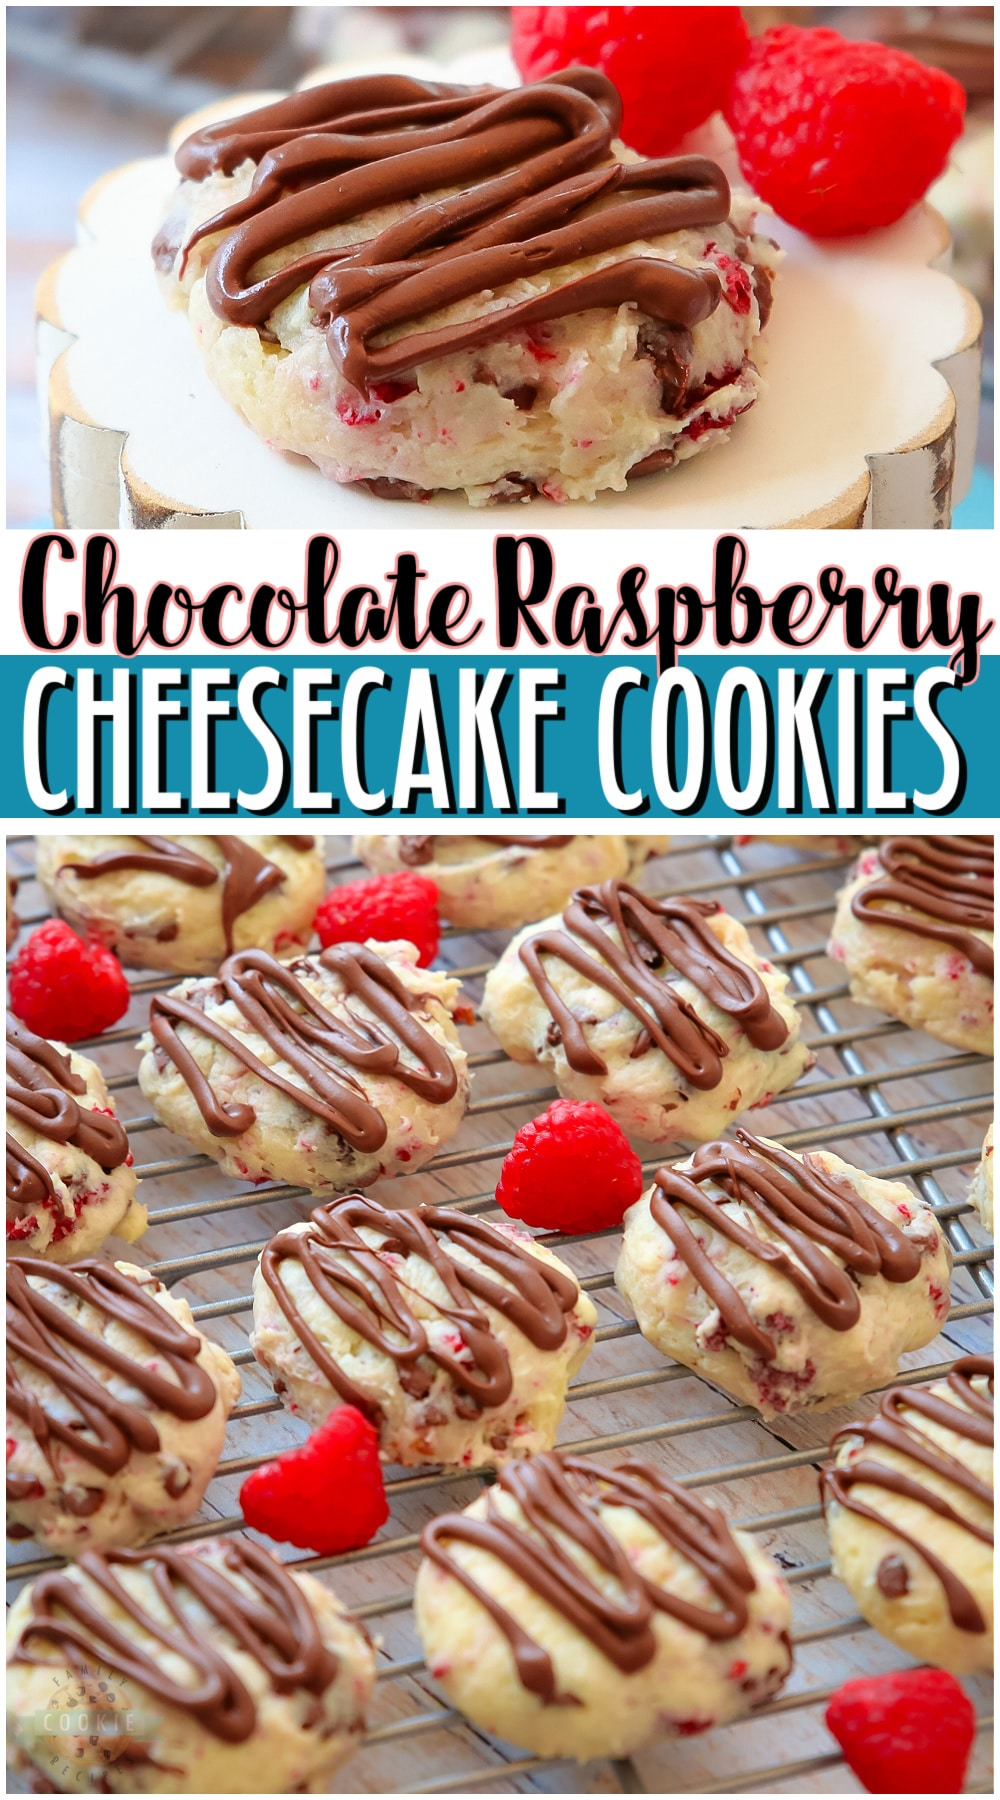 Chocolate Raspberry Cheesecake Cookies are indulgent cookies made with cream cheese, chocolate chips & raspberries! Soft cookies with bright raspberry cheesecake flavor that everyone loves!